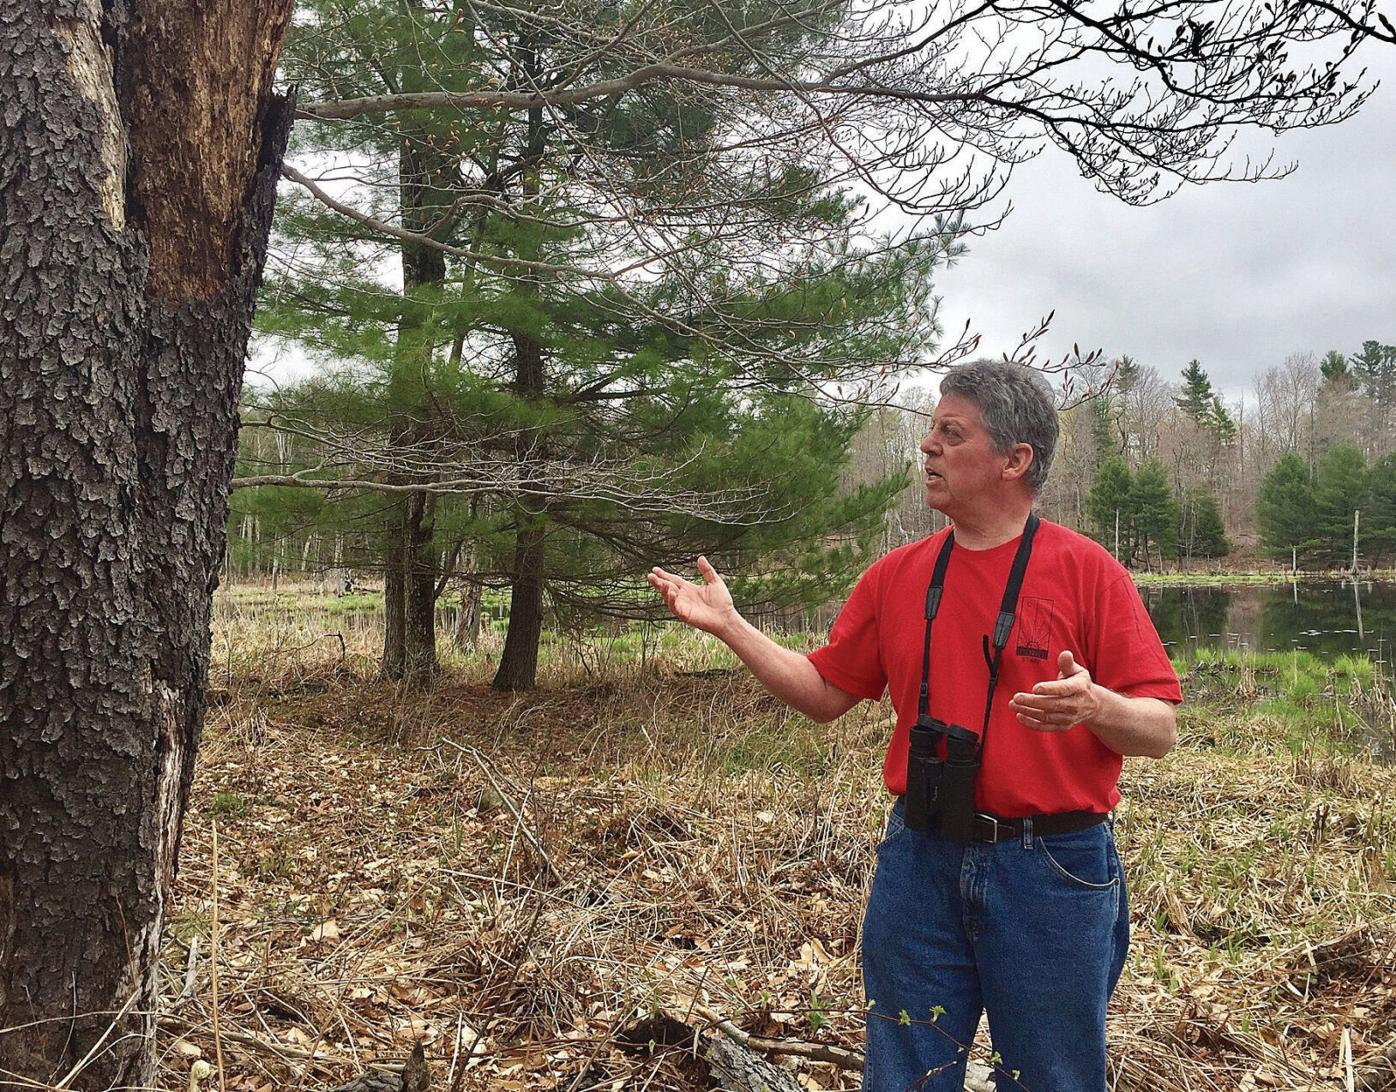 With pipeline work looming, anxiety mounts in Sandisfield